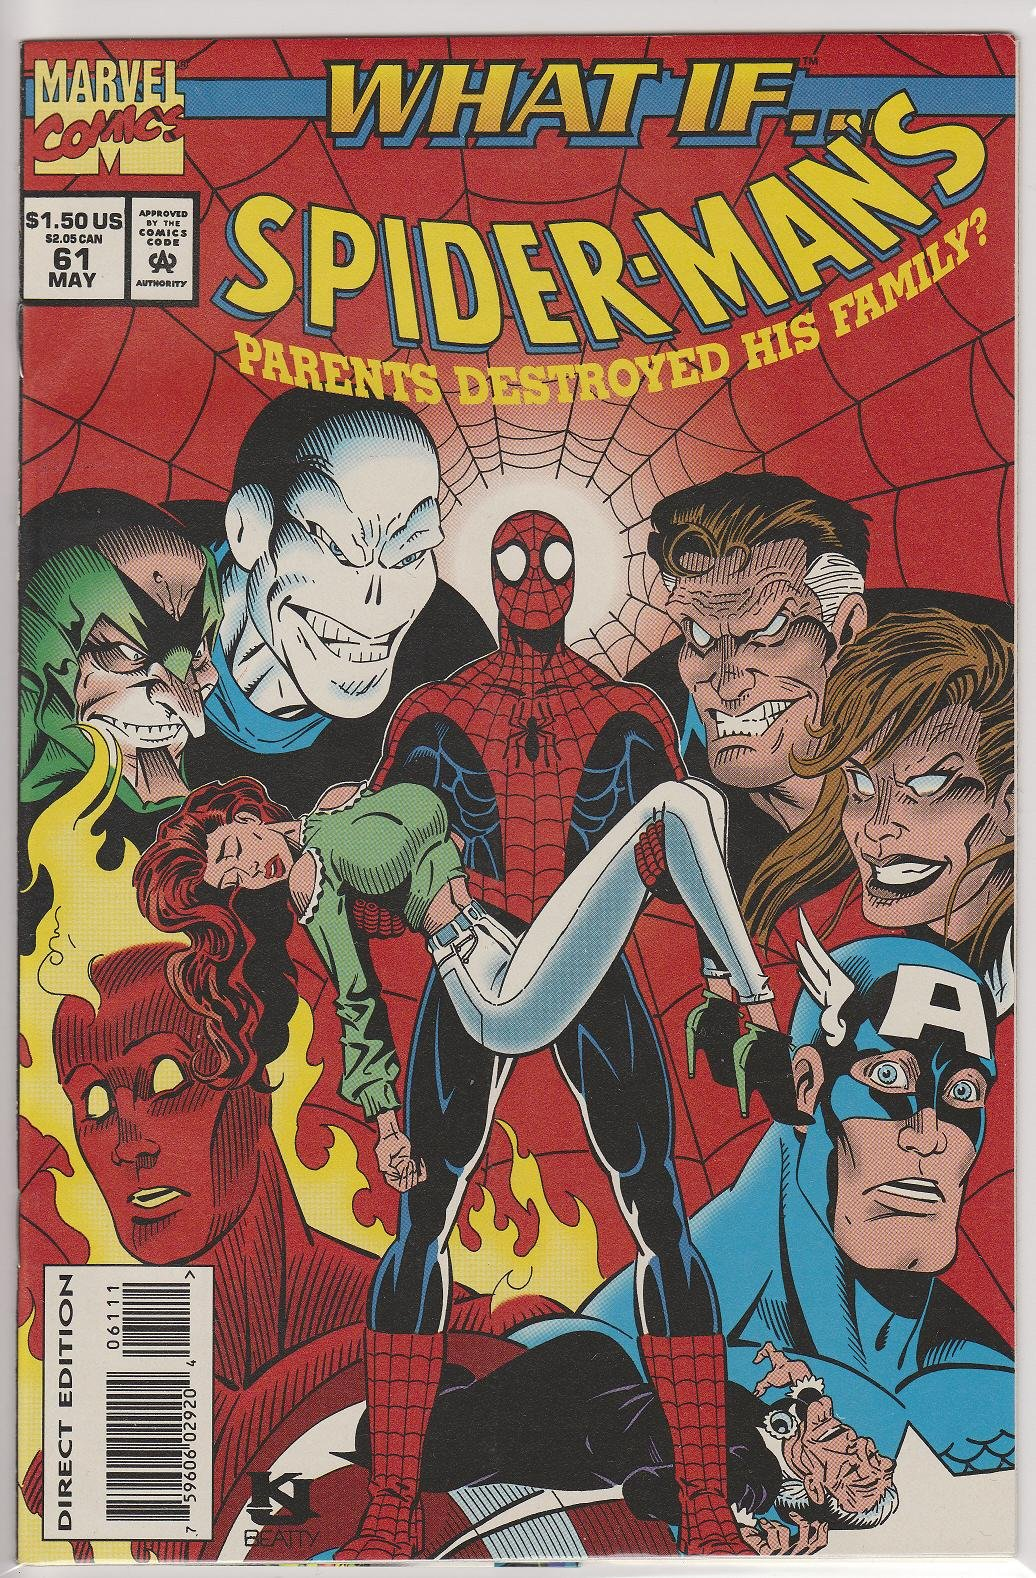 What If #61 Vol.2 (Spider-Man's Parents Destroyed His Family?): Amazon.com: Books